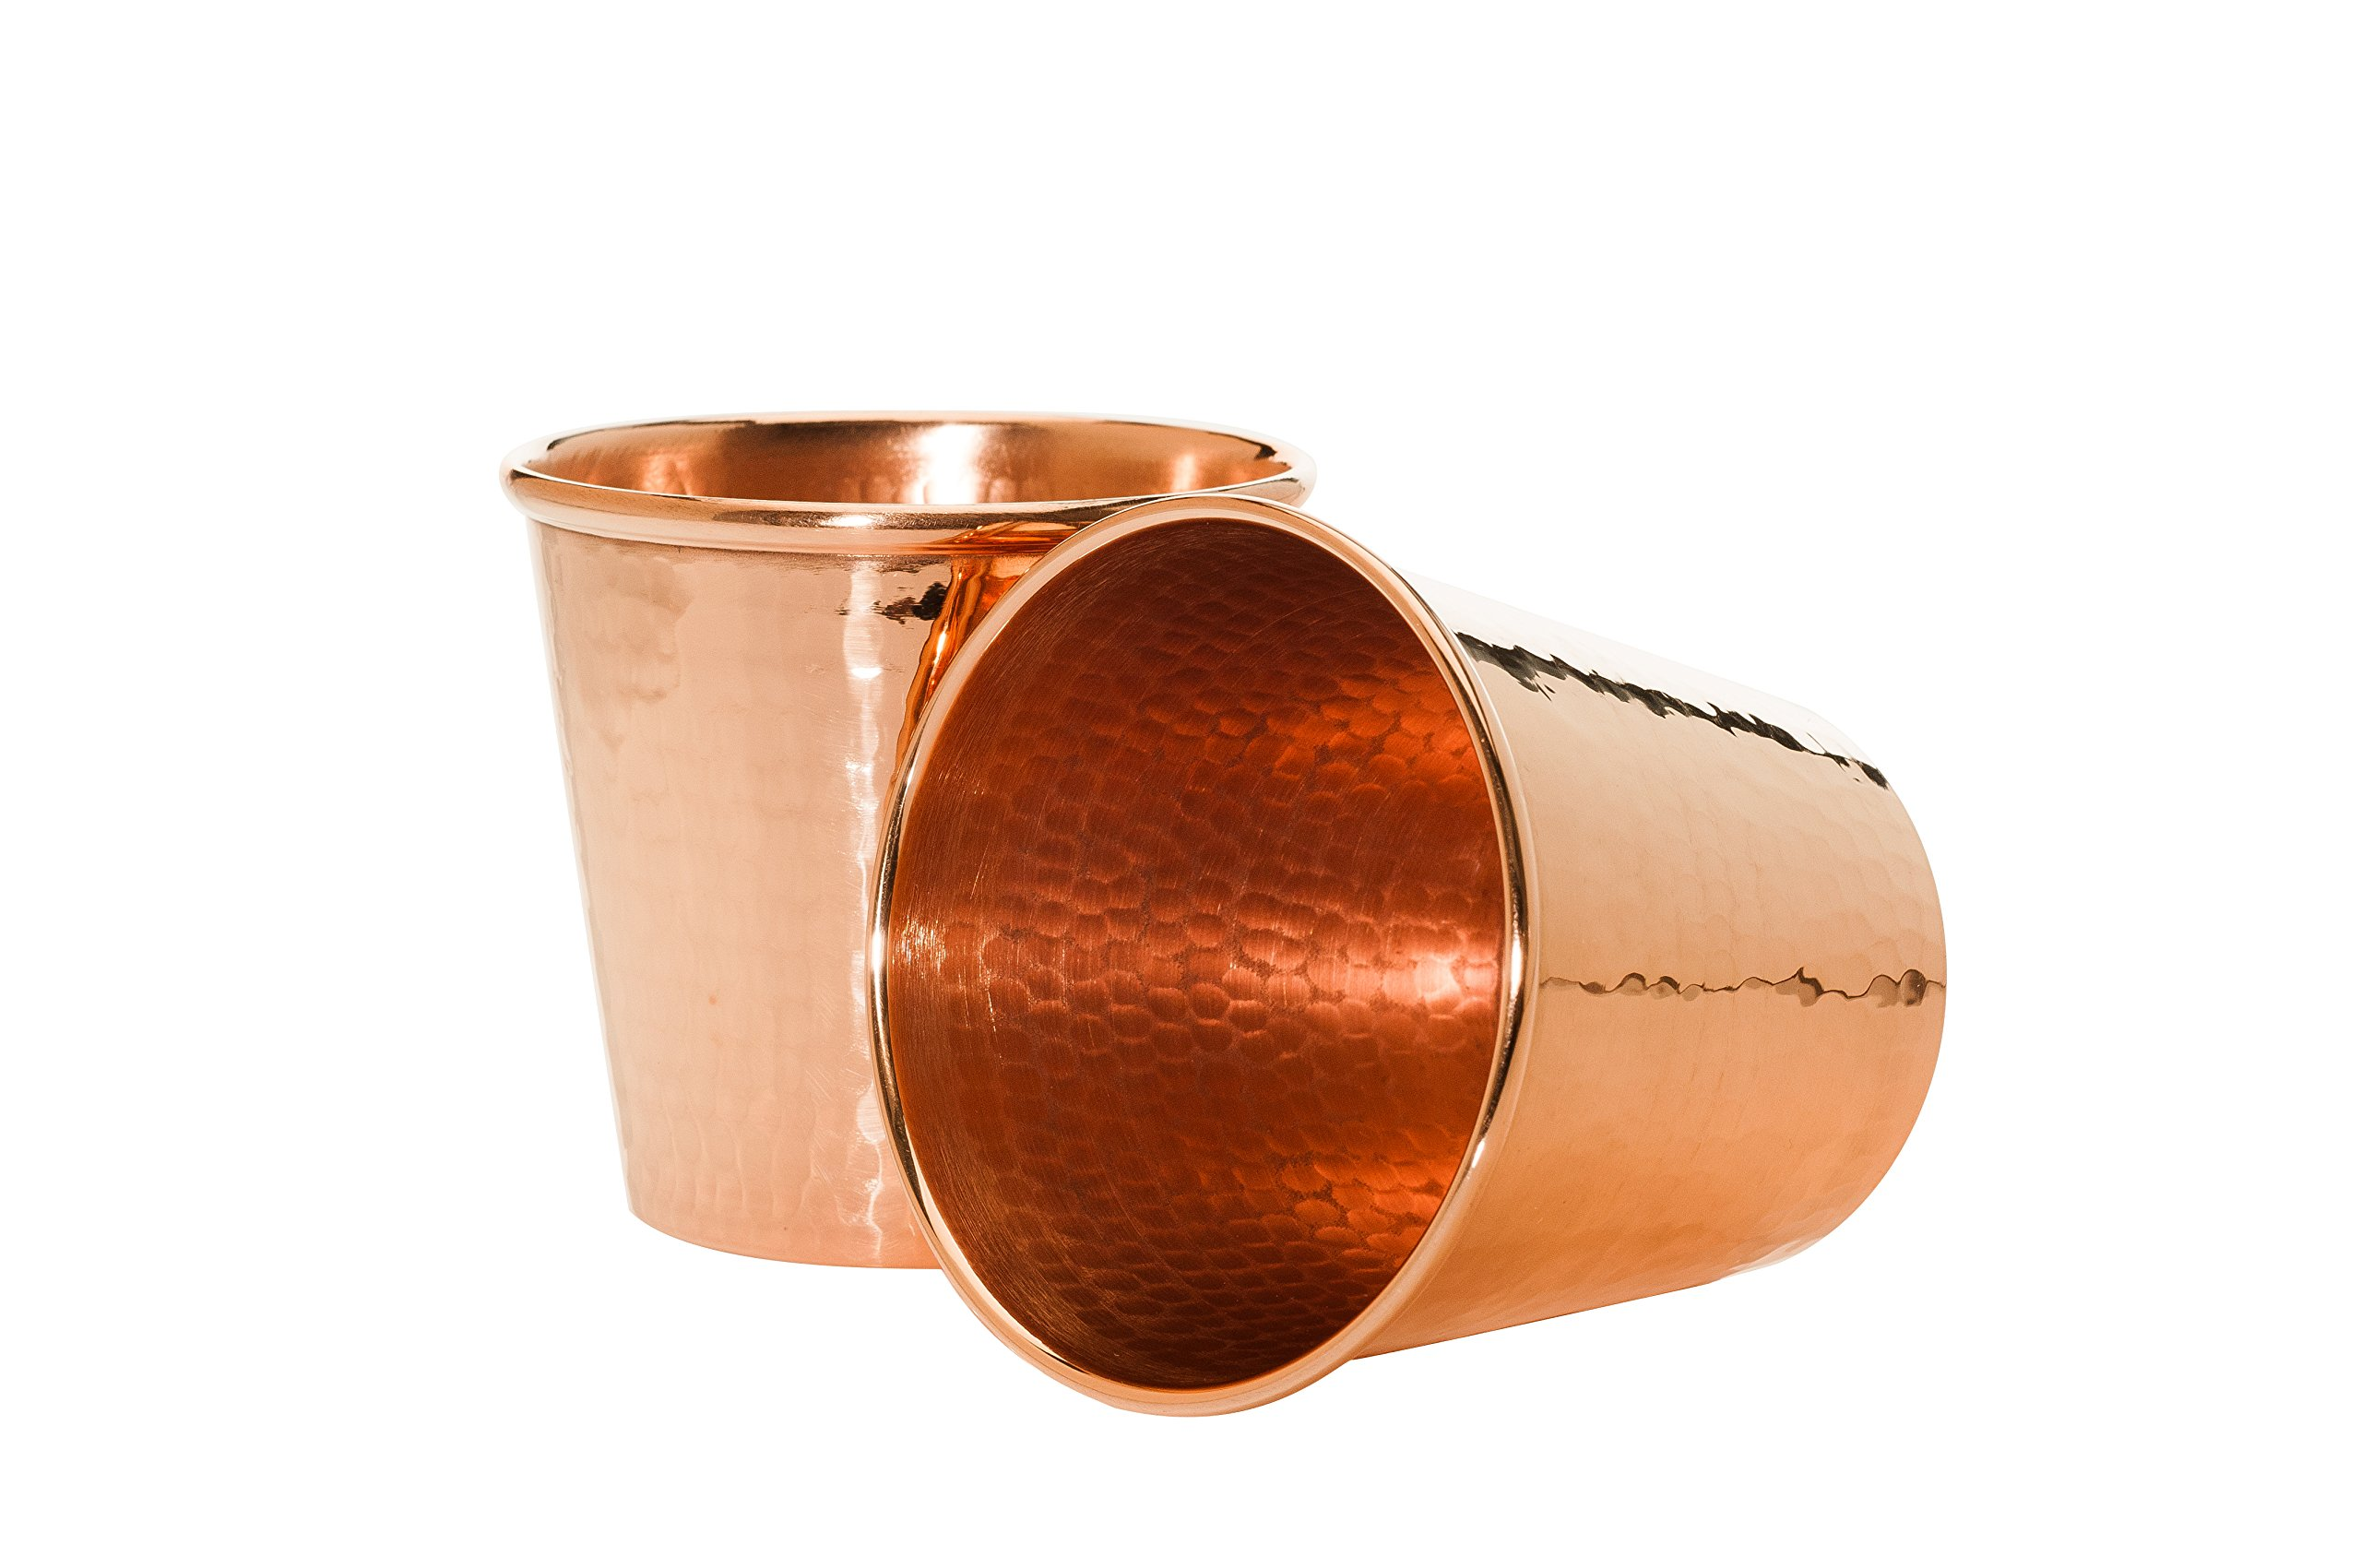 Sertodo Copper CC-12-2 Moscow Mule Mug without Handle, Hand Hammered 100% Pure Copper Apa Cup, 12 oz, Set of 2